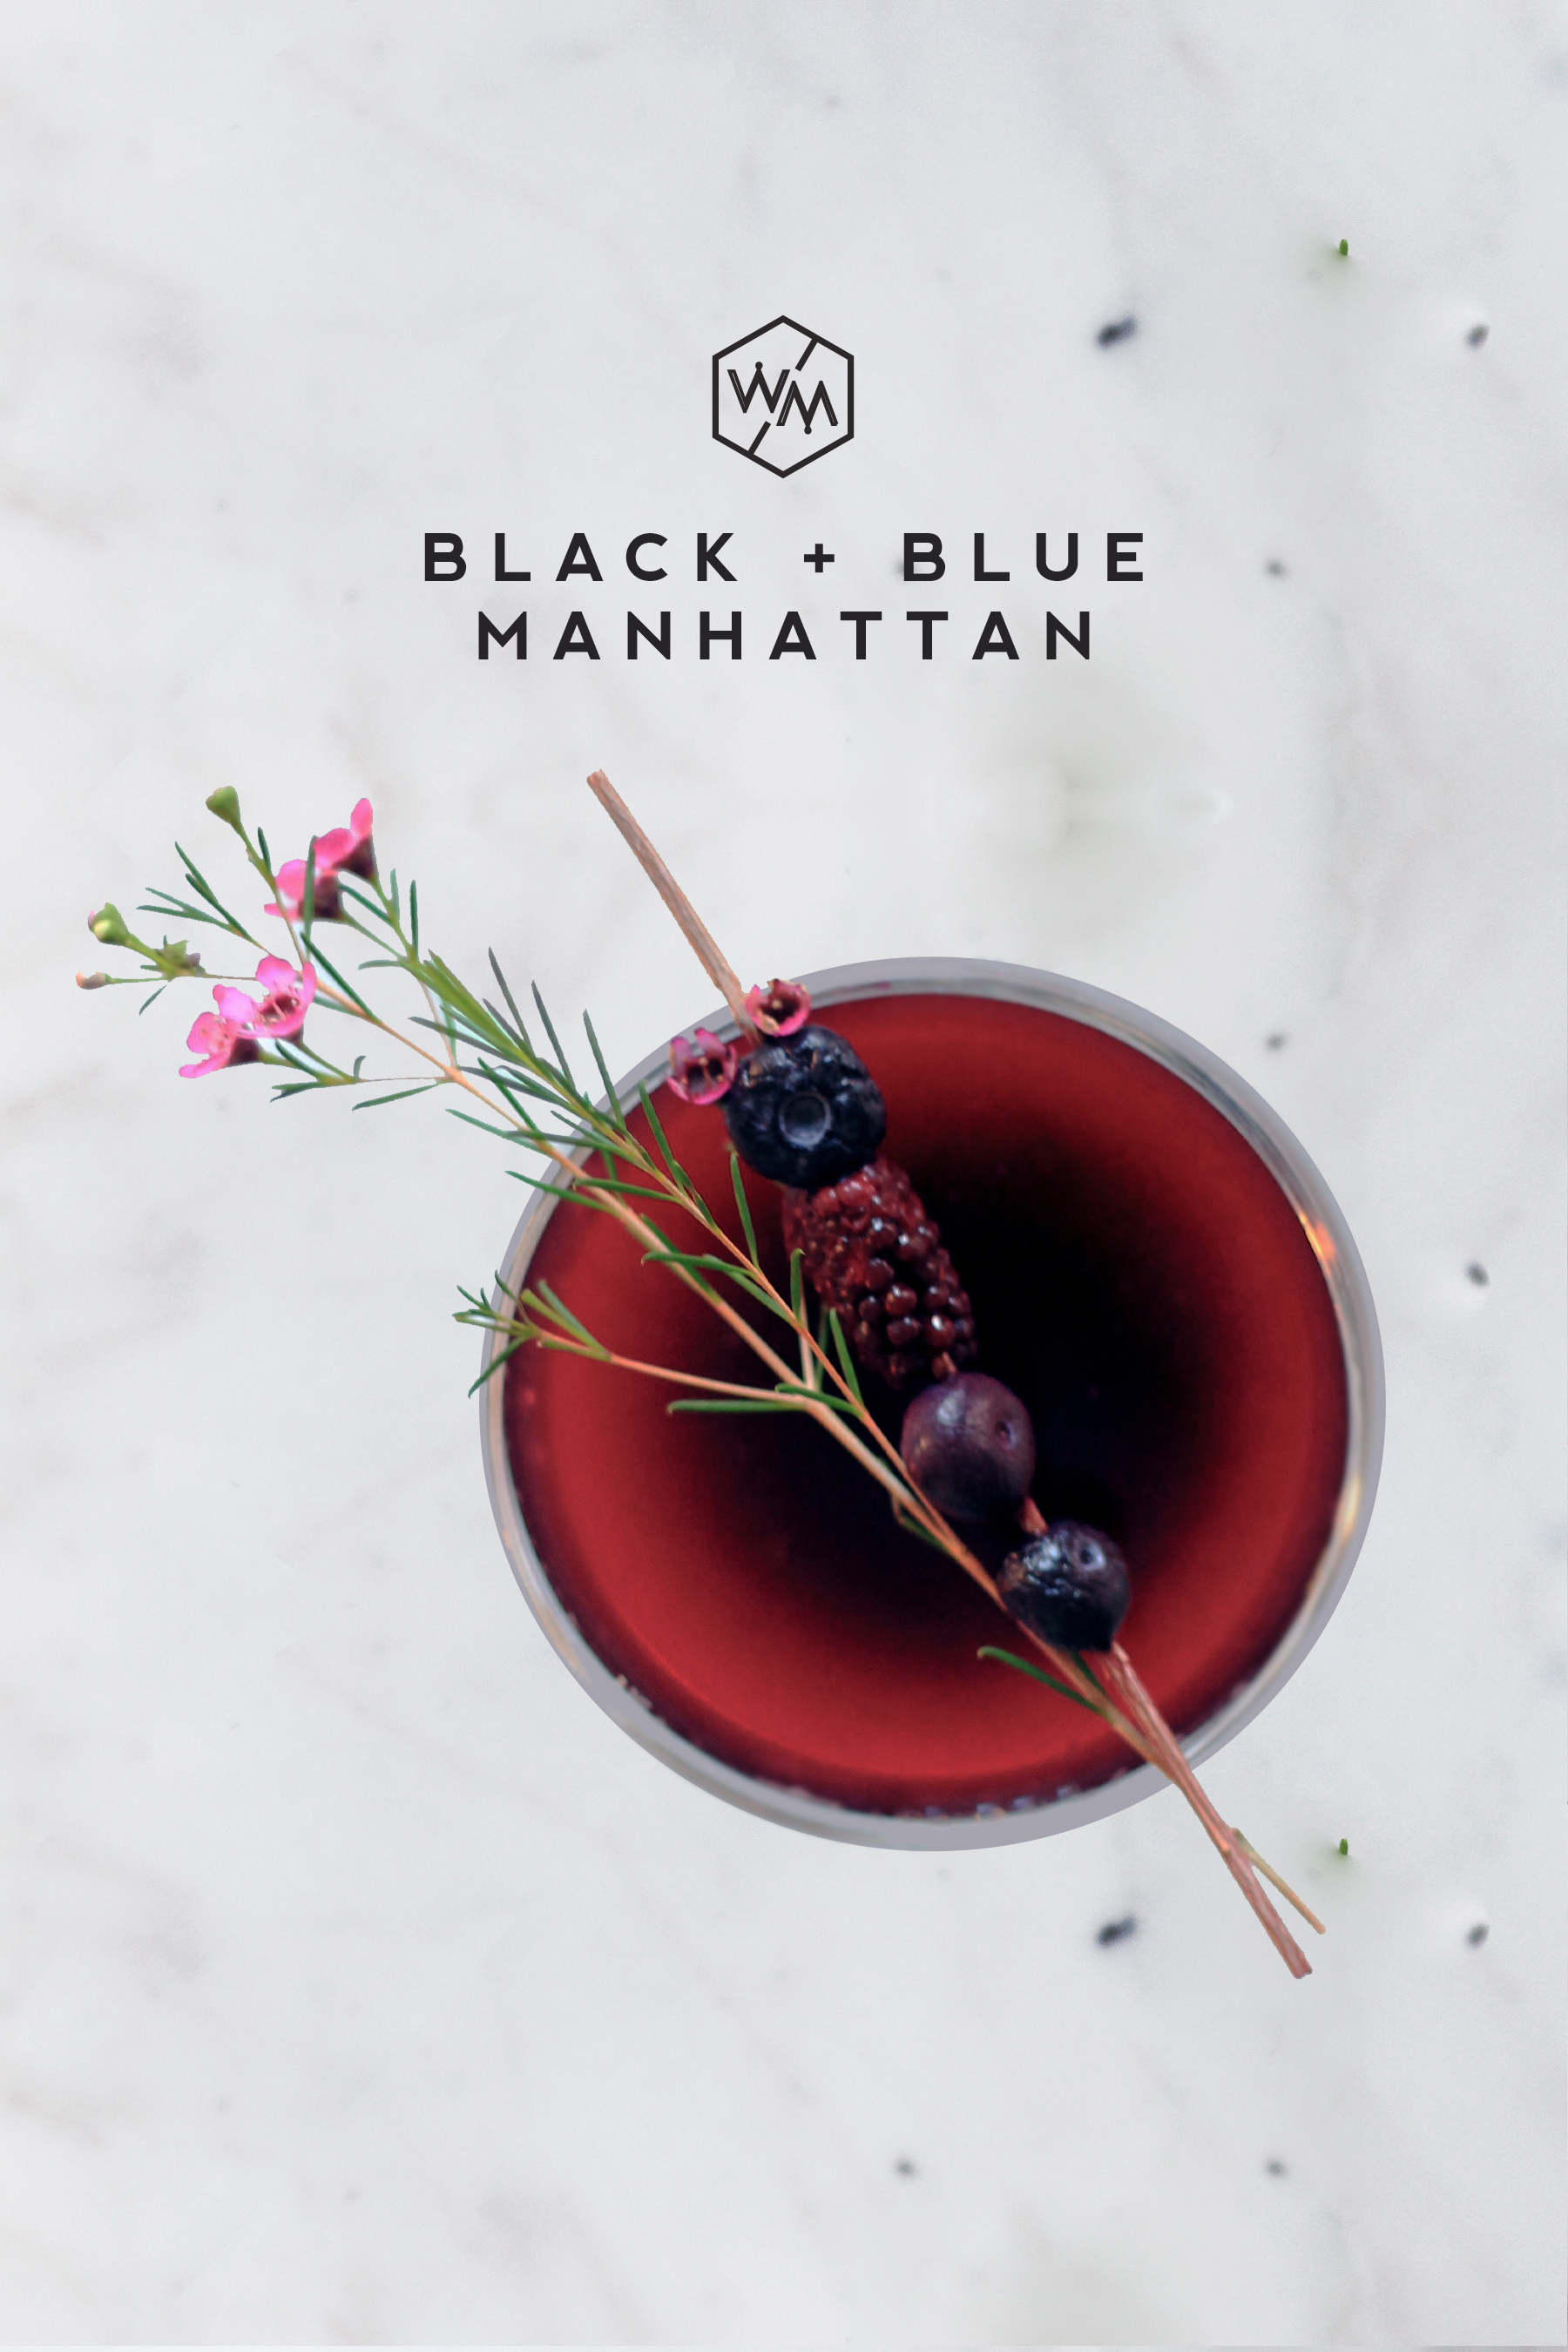 Black + Blue Manhattan - Whiskey Muse